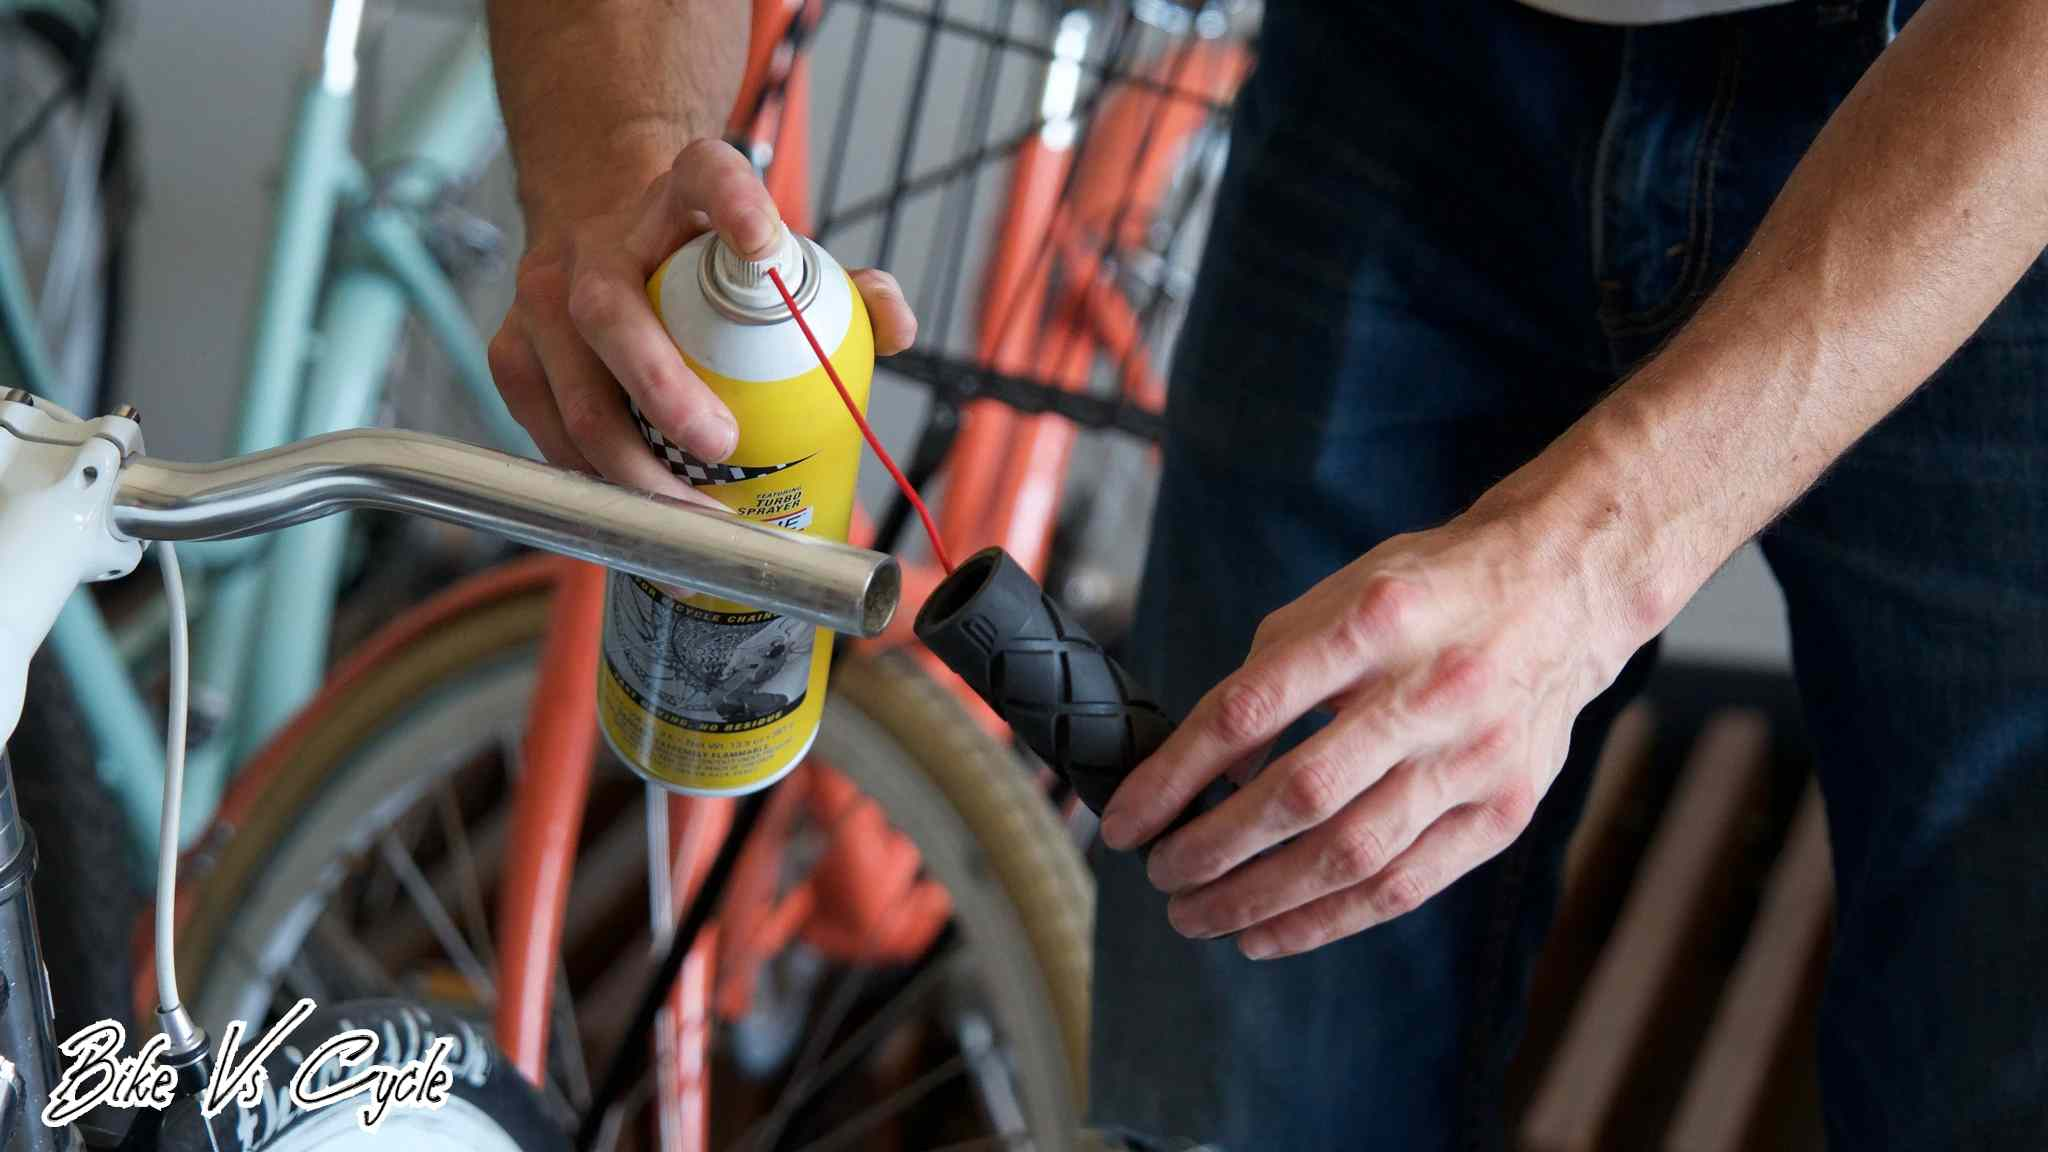 How to remove bike grips